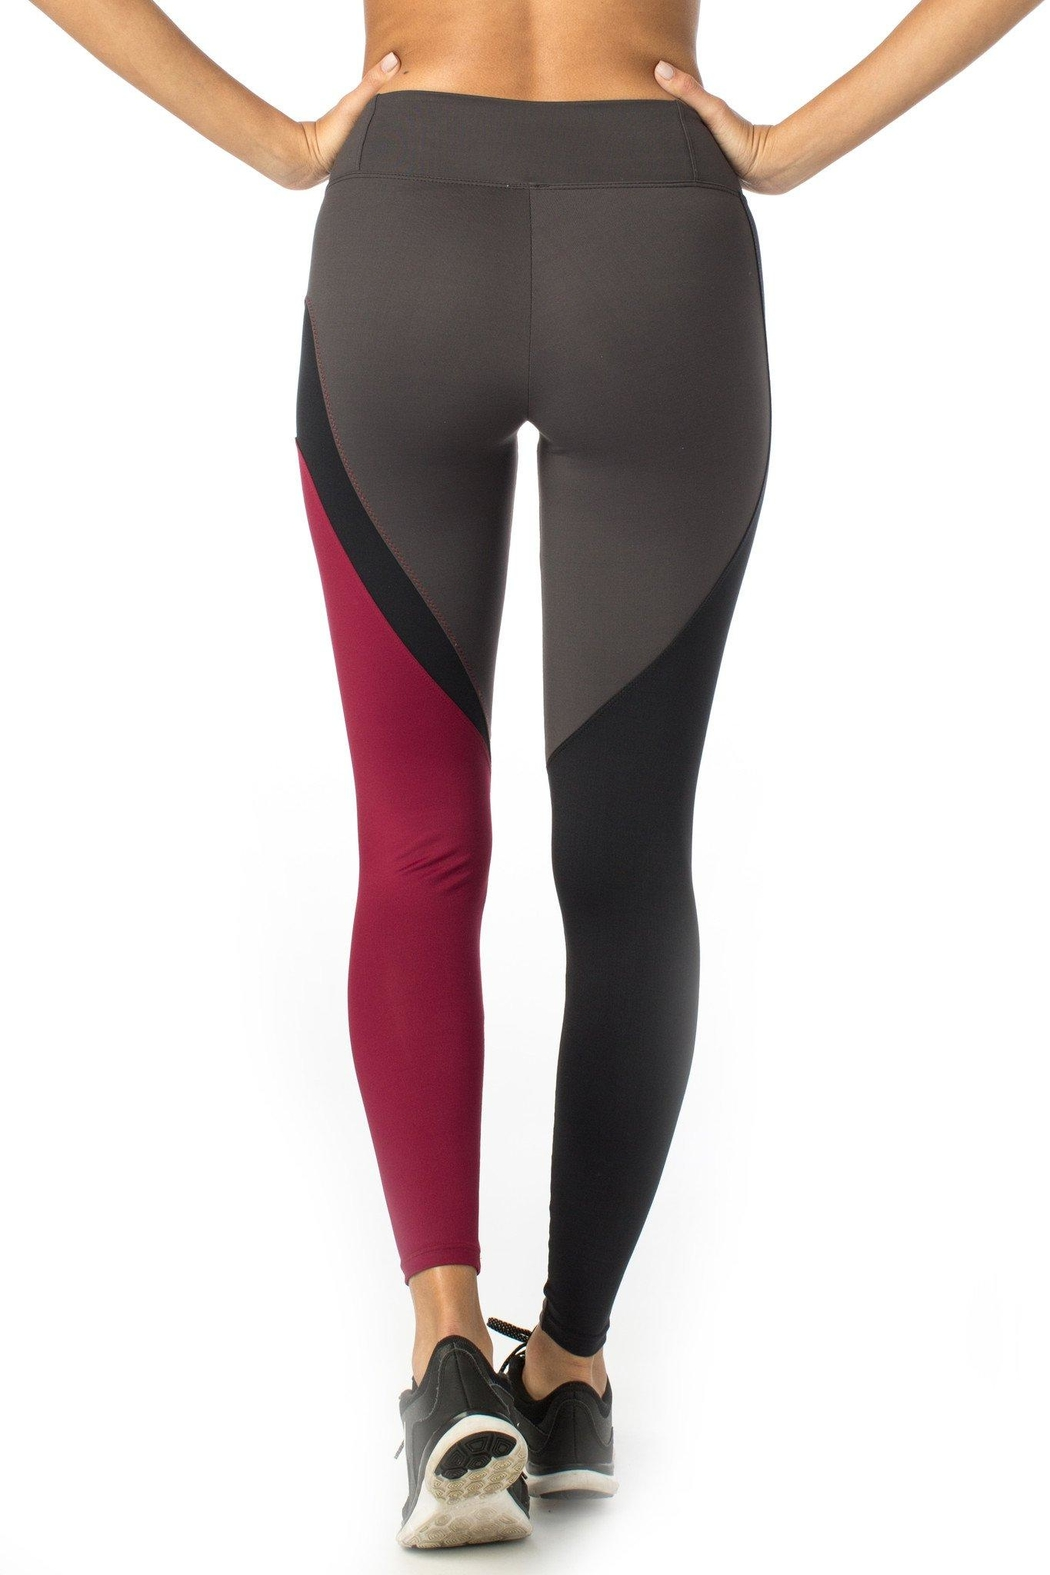 925 FIT Collateral Damage Legging - Side Cropped Image